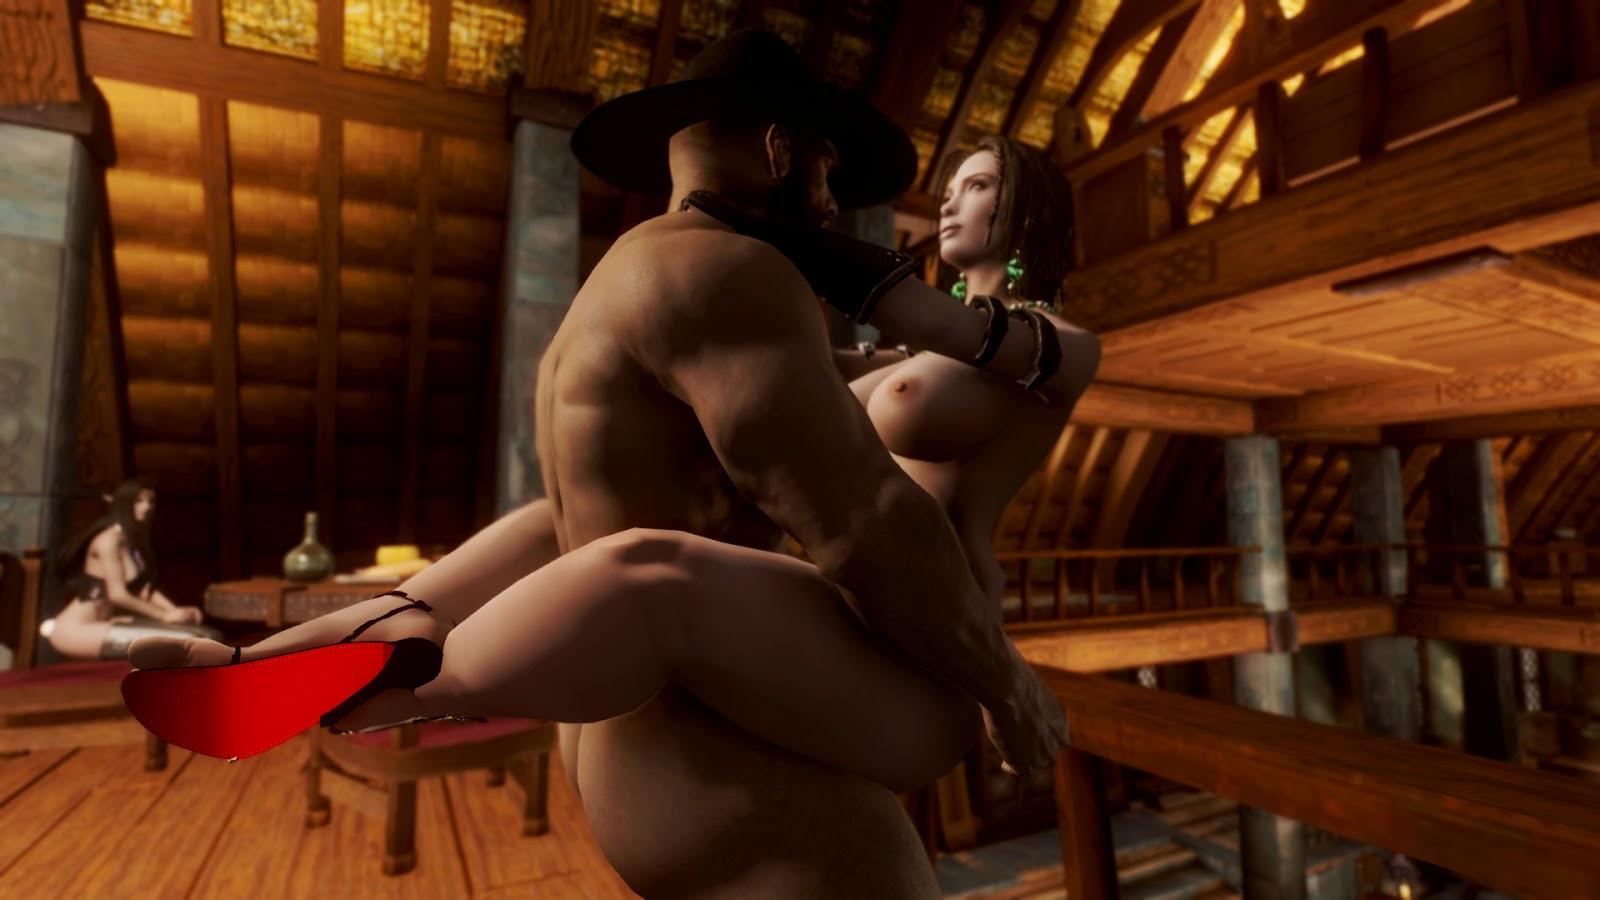 Skyrim sex mod daughter nude gallery